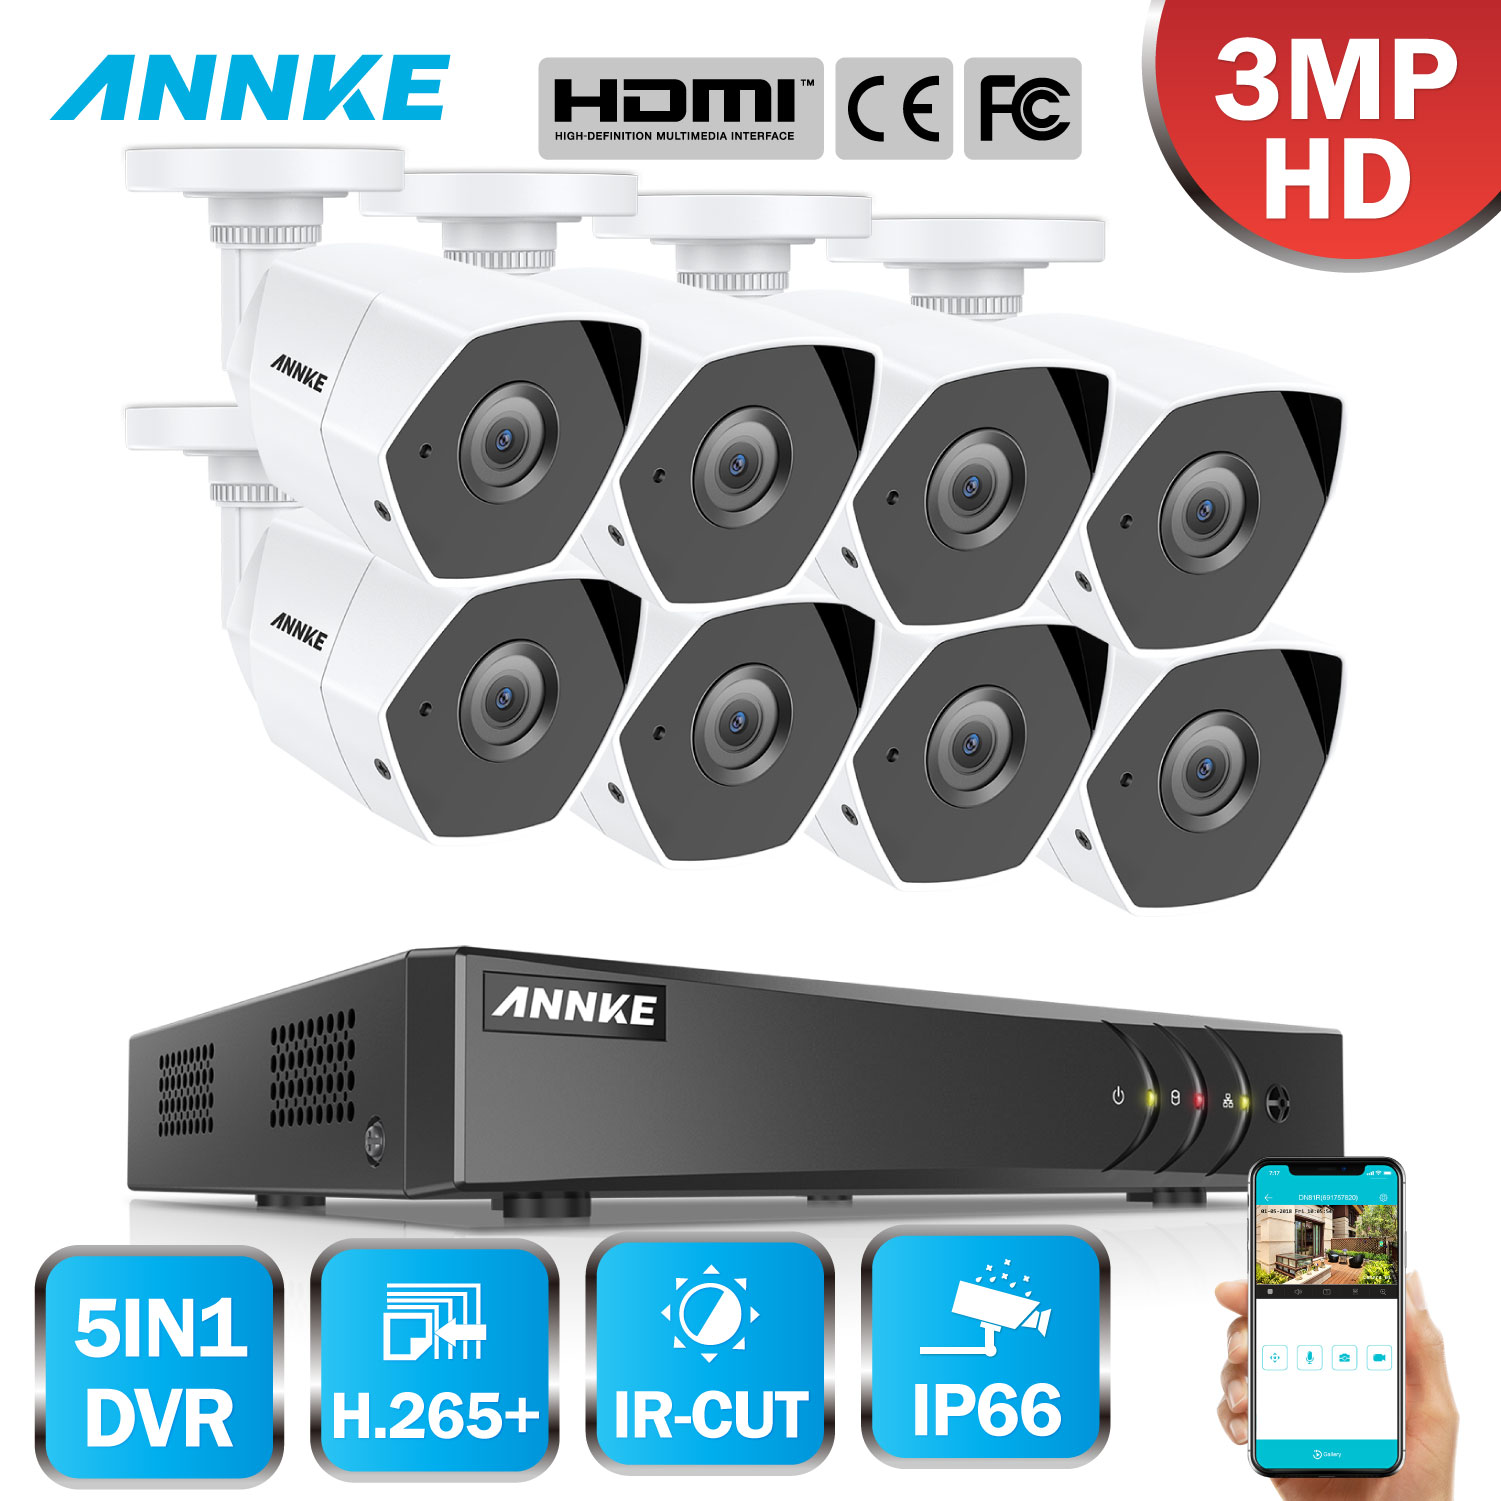 ANNKE HD 8CH 3MP 5in1 H 265 CCTV Security System 3MP 8PCS Smart IR Cut Night